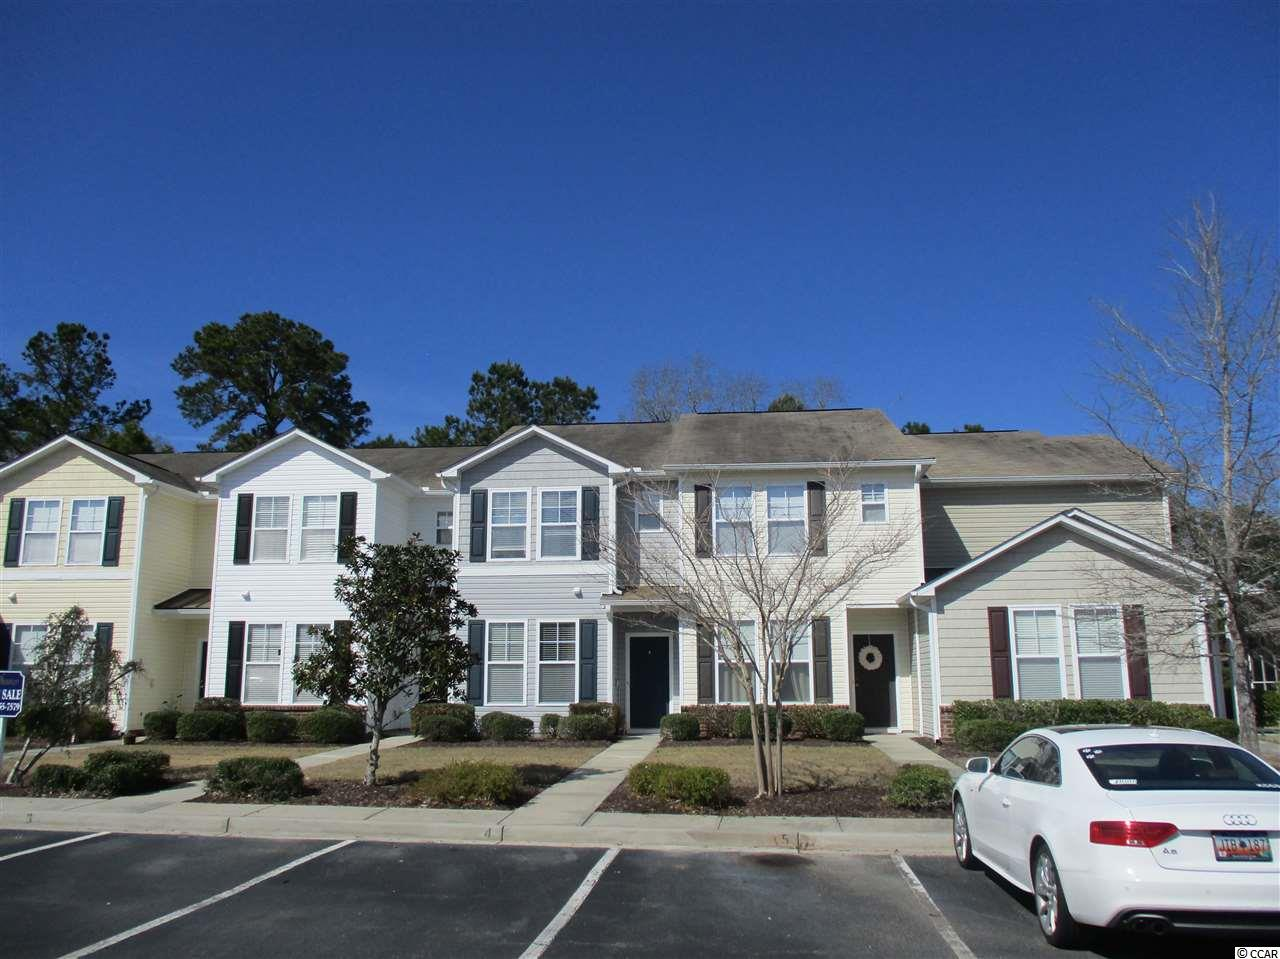 Townhouse MLS:1912376 WELLINGTON - SOCASTEE  152 Olde Towne Way Myrtle Beach SC